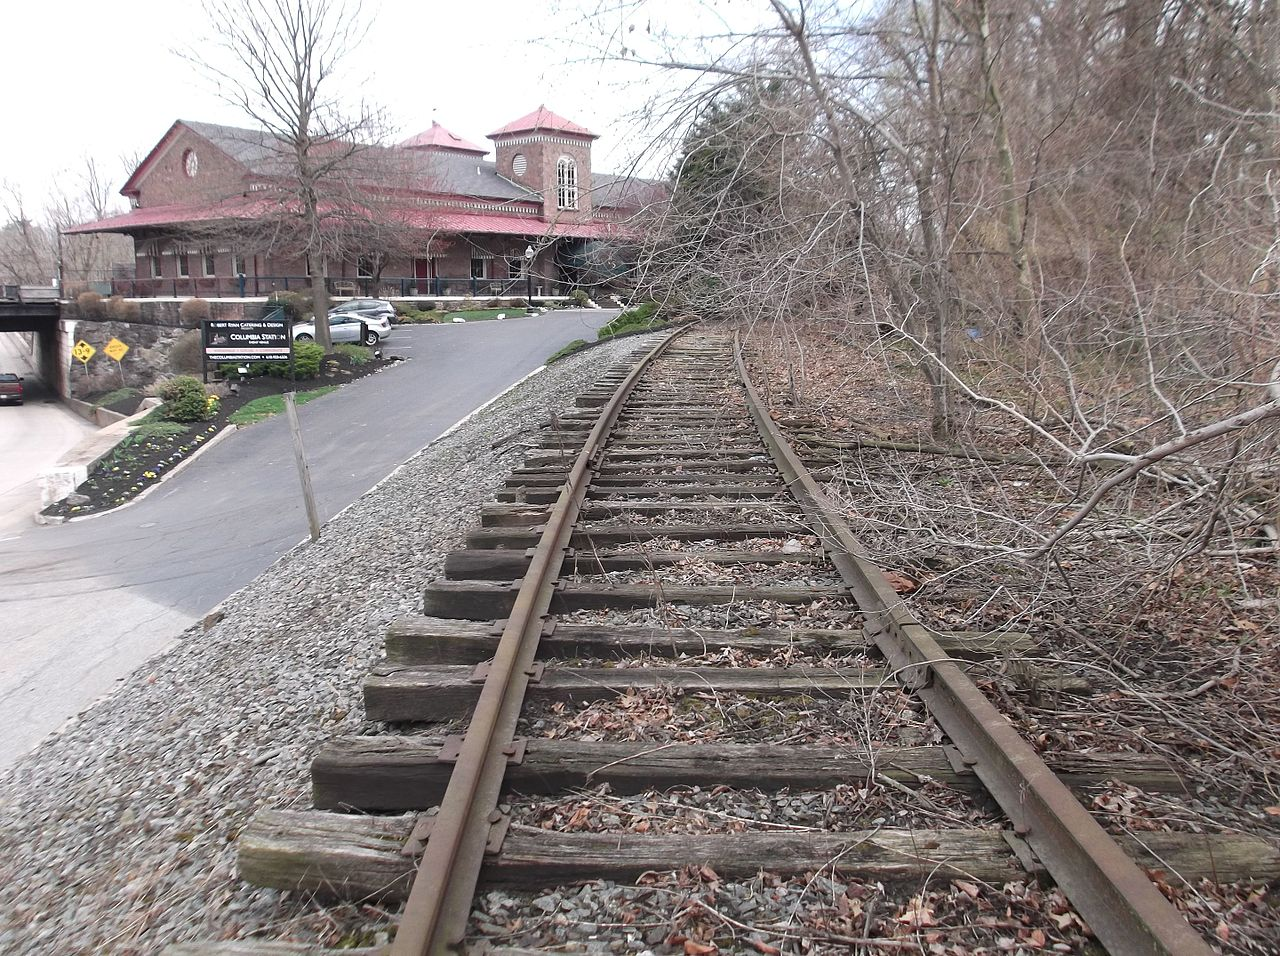 Two Major Obstacles to Be Addressed Before Commuter Rail Service Returns to Phoenixville